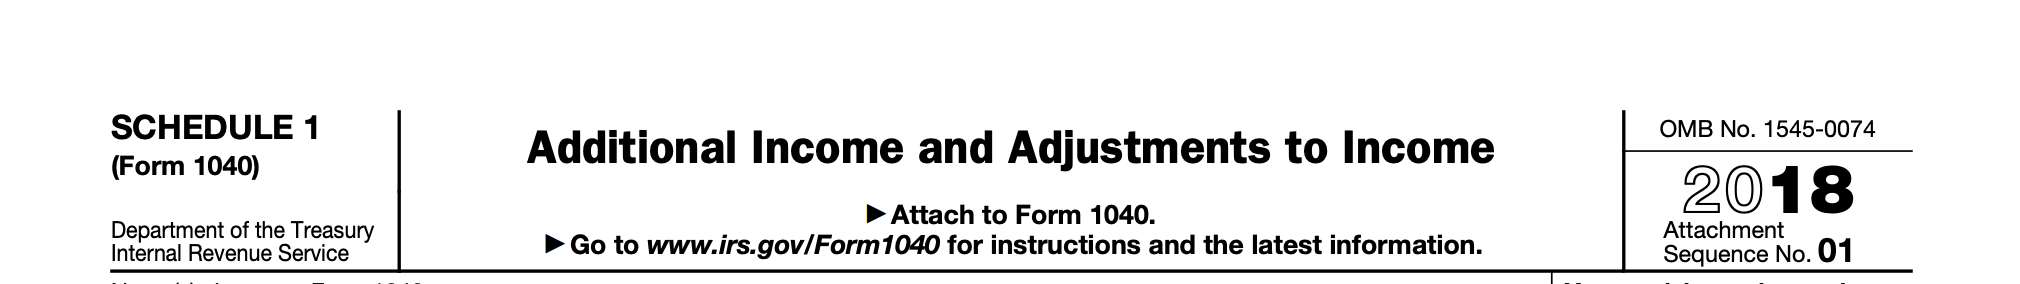 Excerpt of the top of the Form 1040 Schedule 1